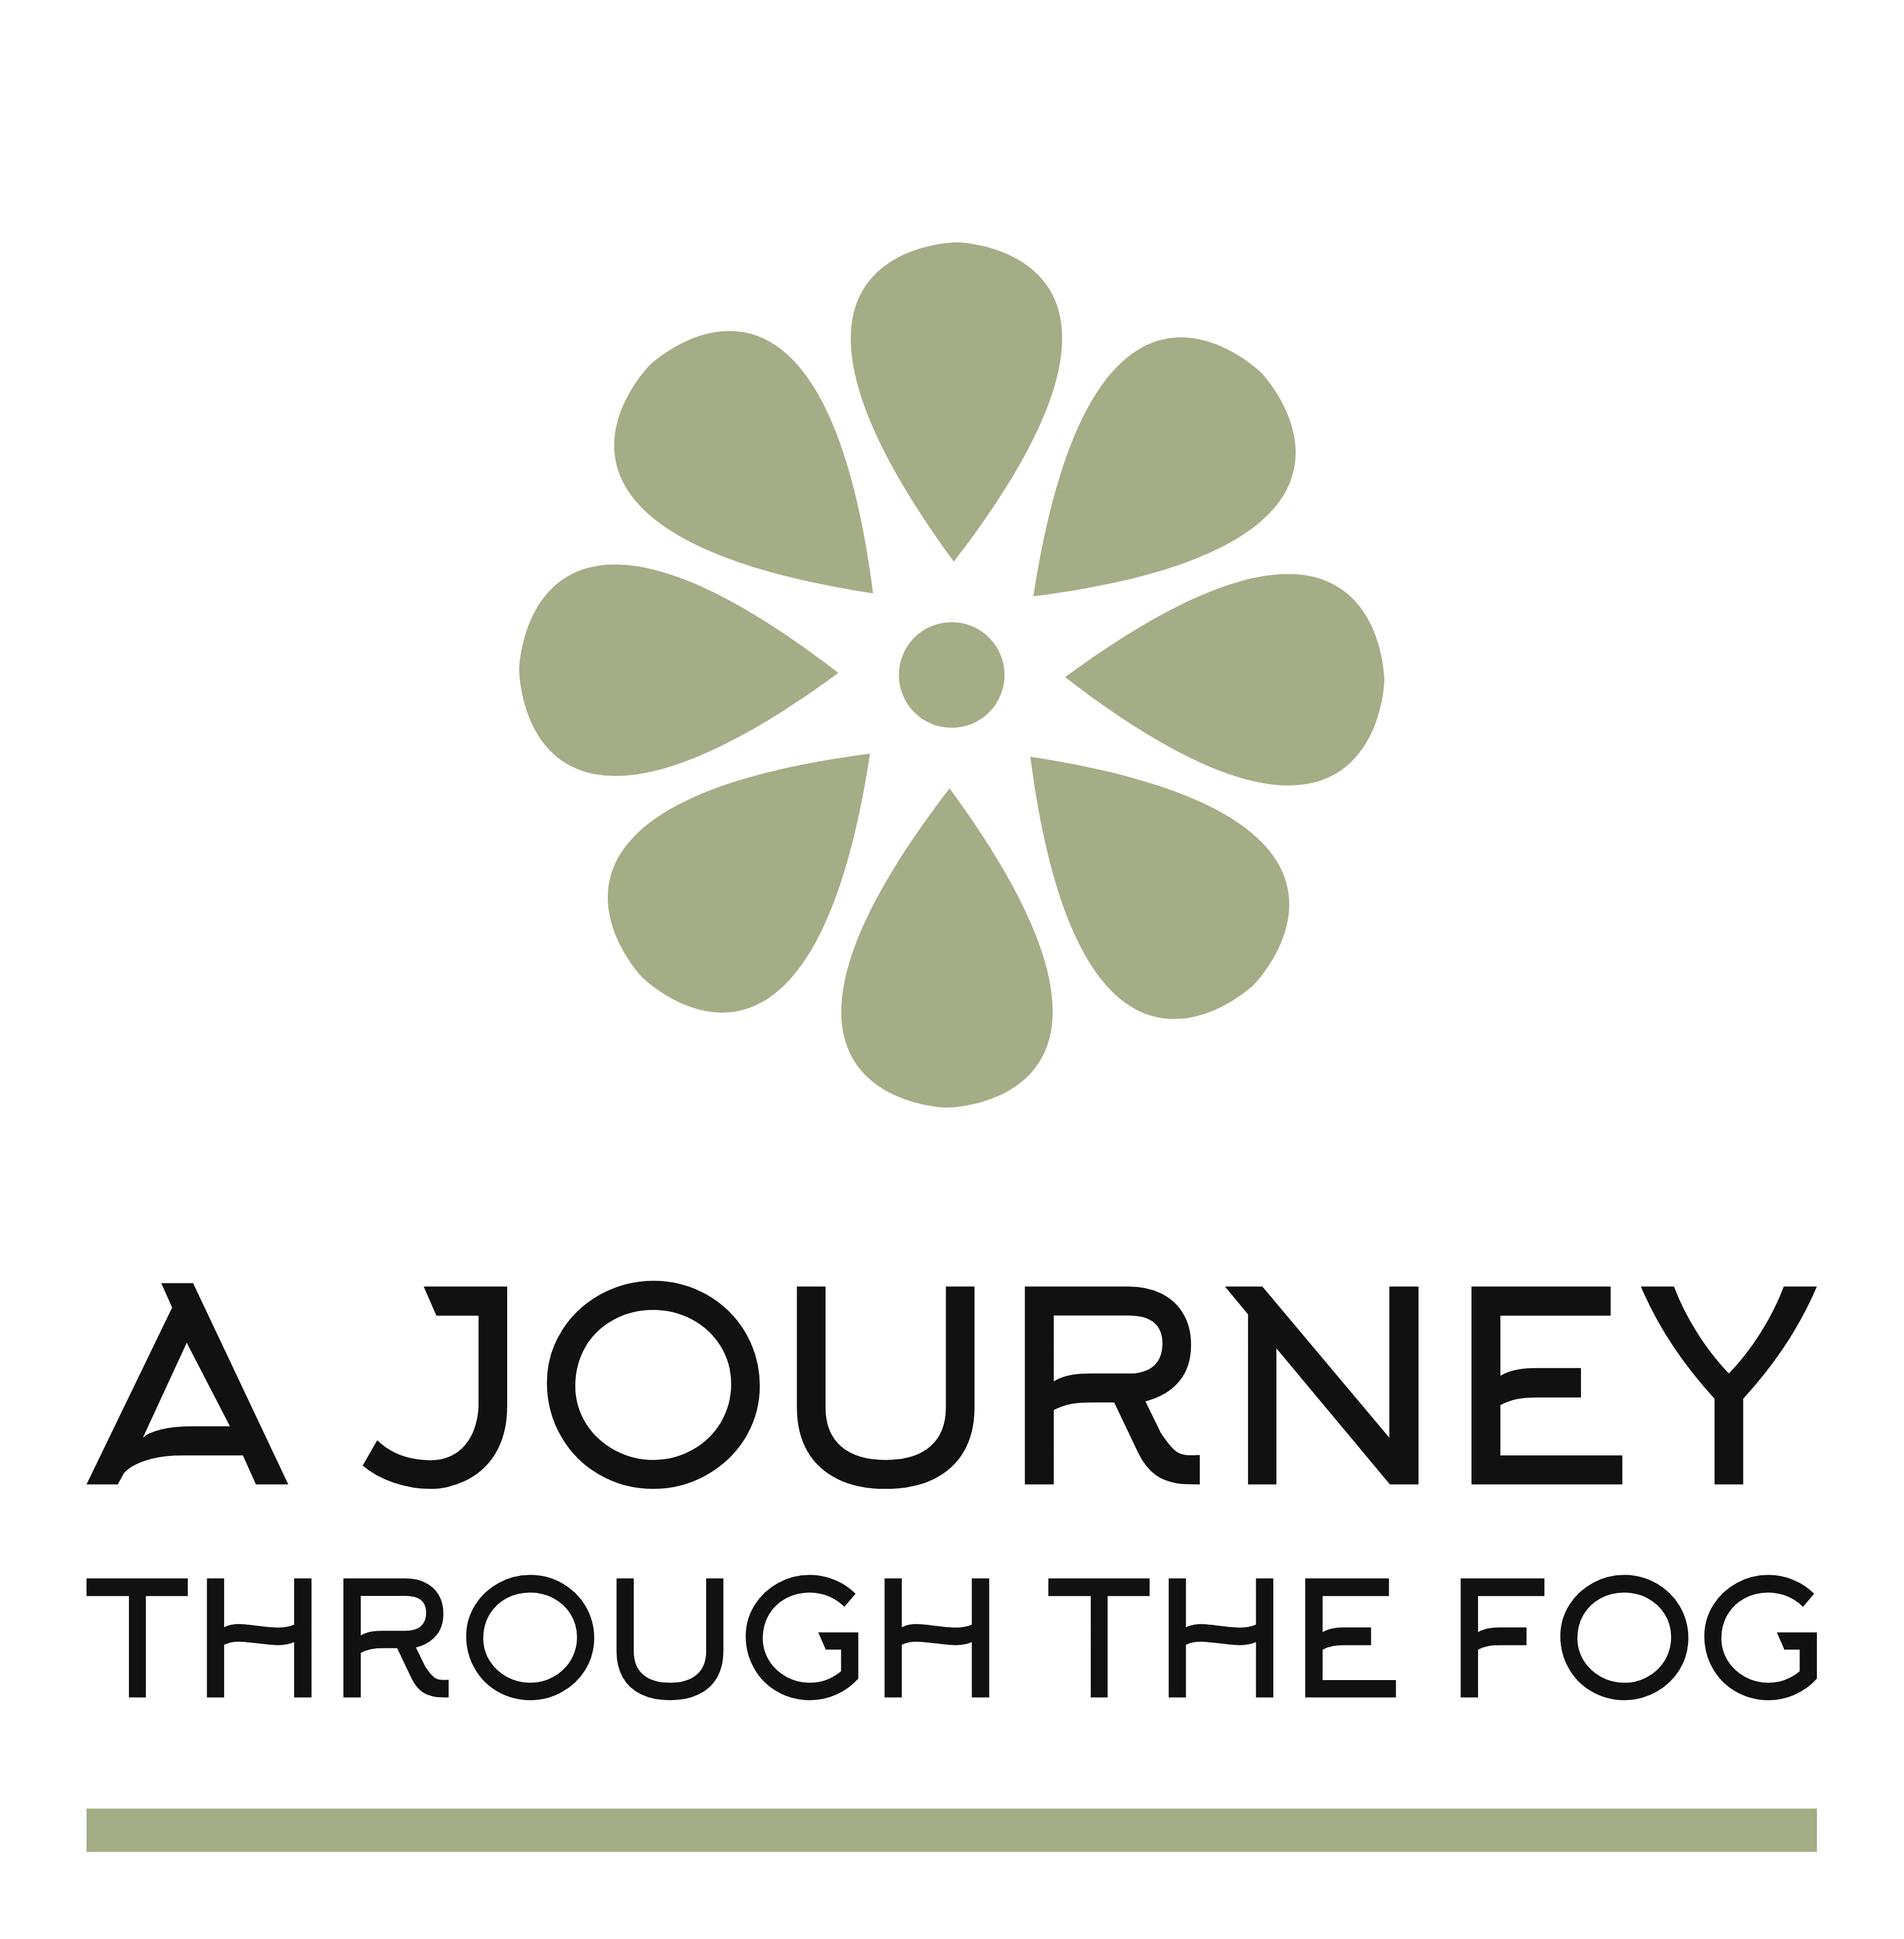 A Journey Through the Fog